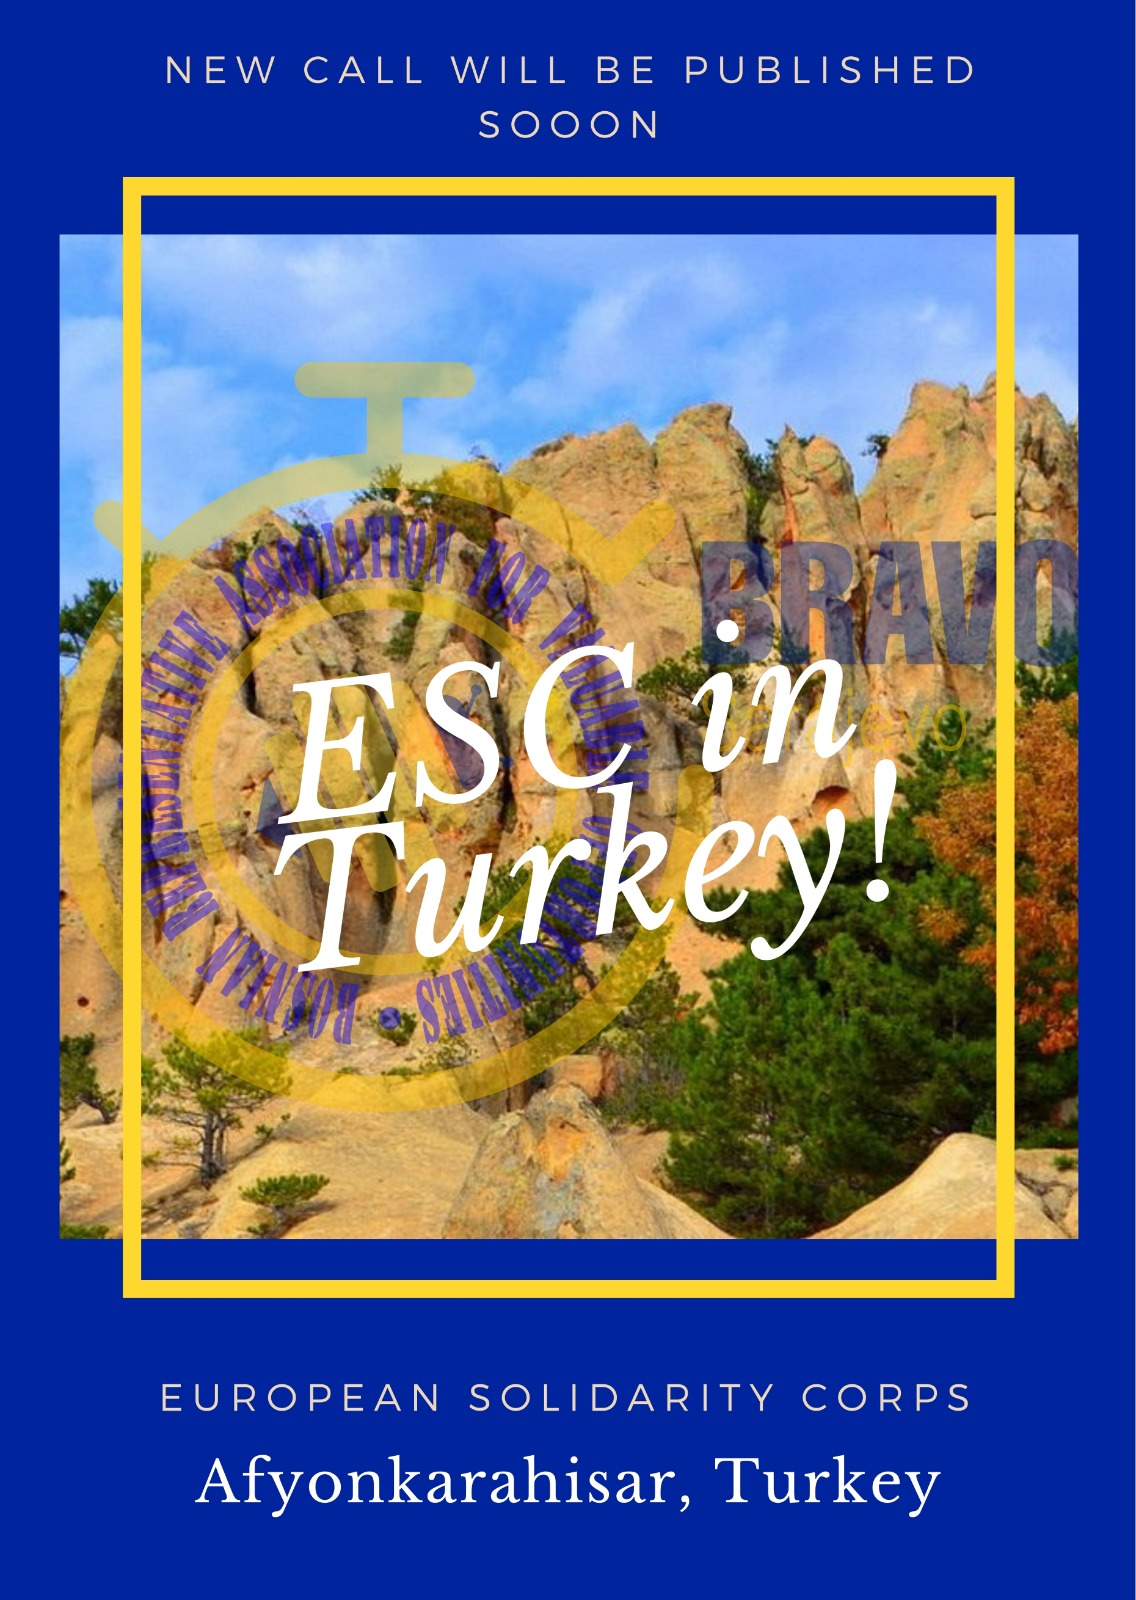 Open Call for 2 volunteers for ESC Project in Afyonkarahisar, Turkey